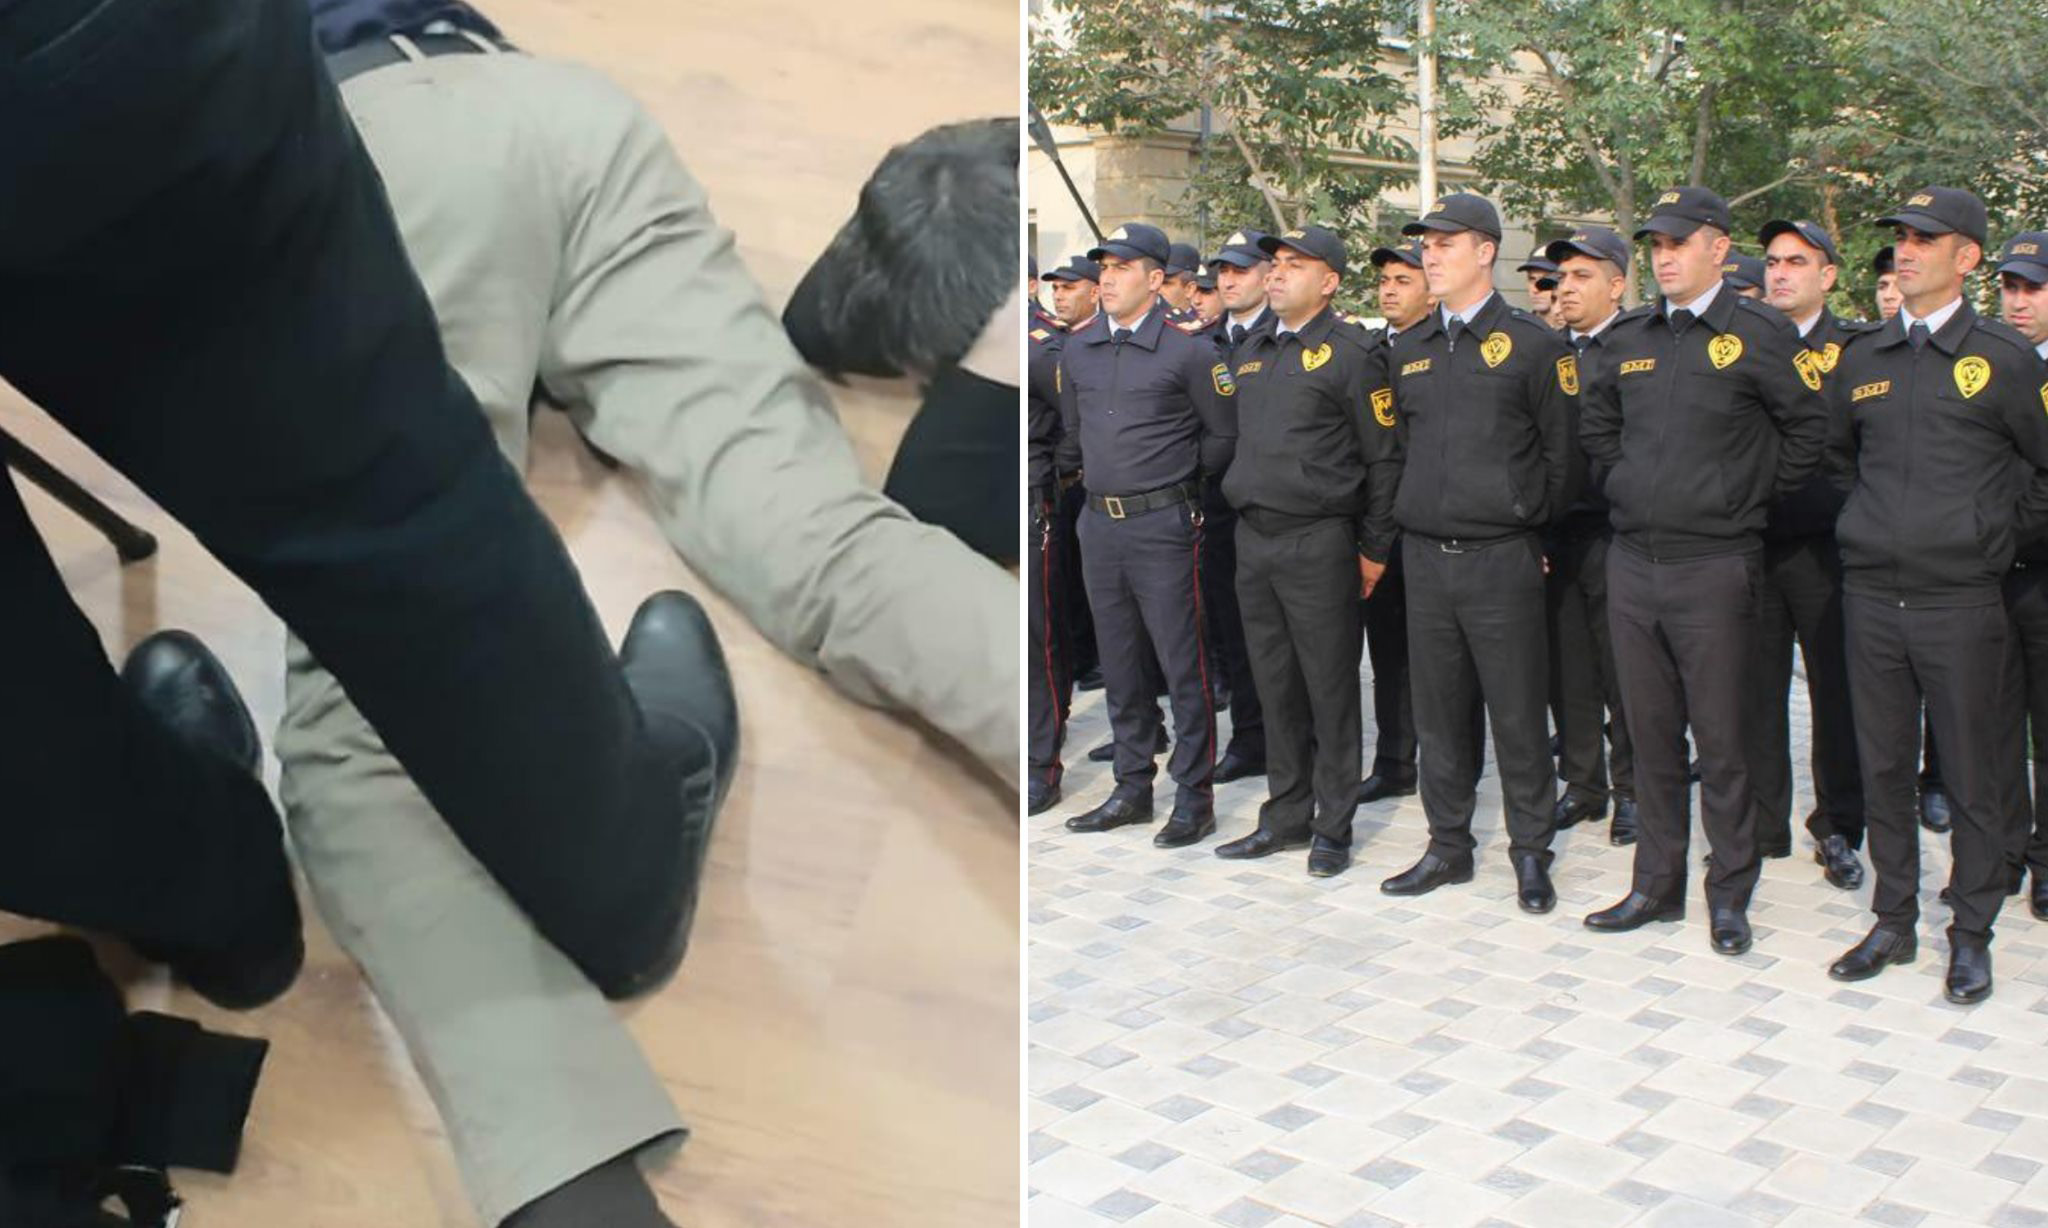 The shoes of one of the alleged police officers was similar to standard-issue shoes warn by the police. Image via Habib Muntazir.